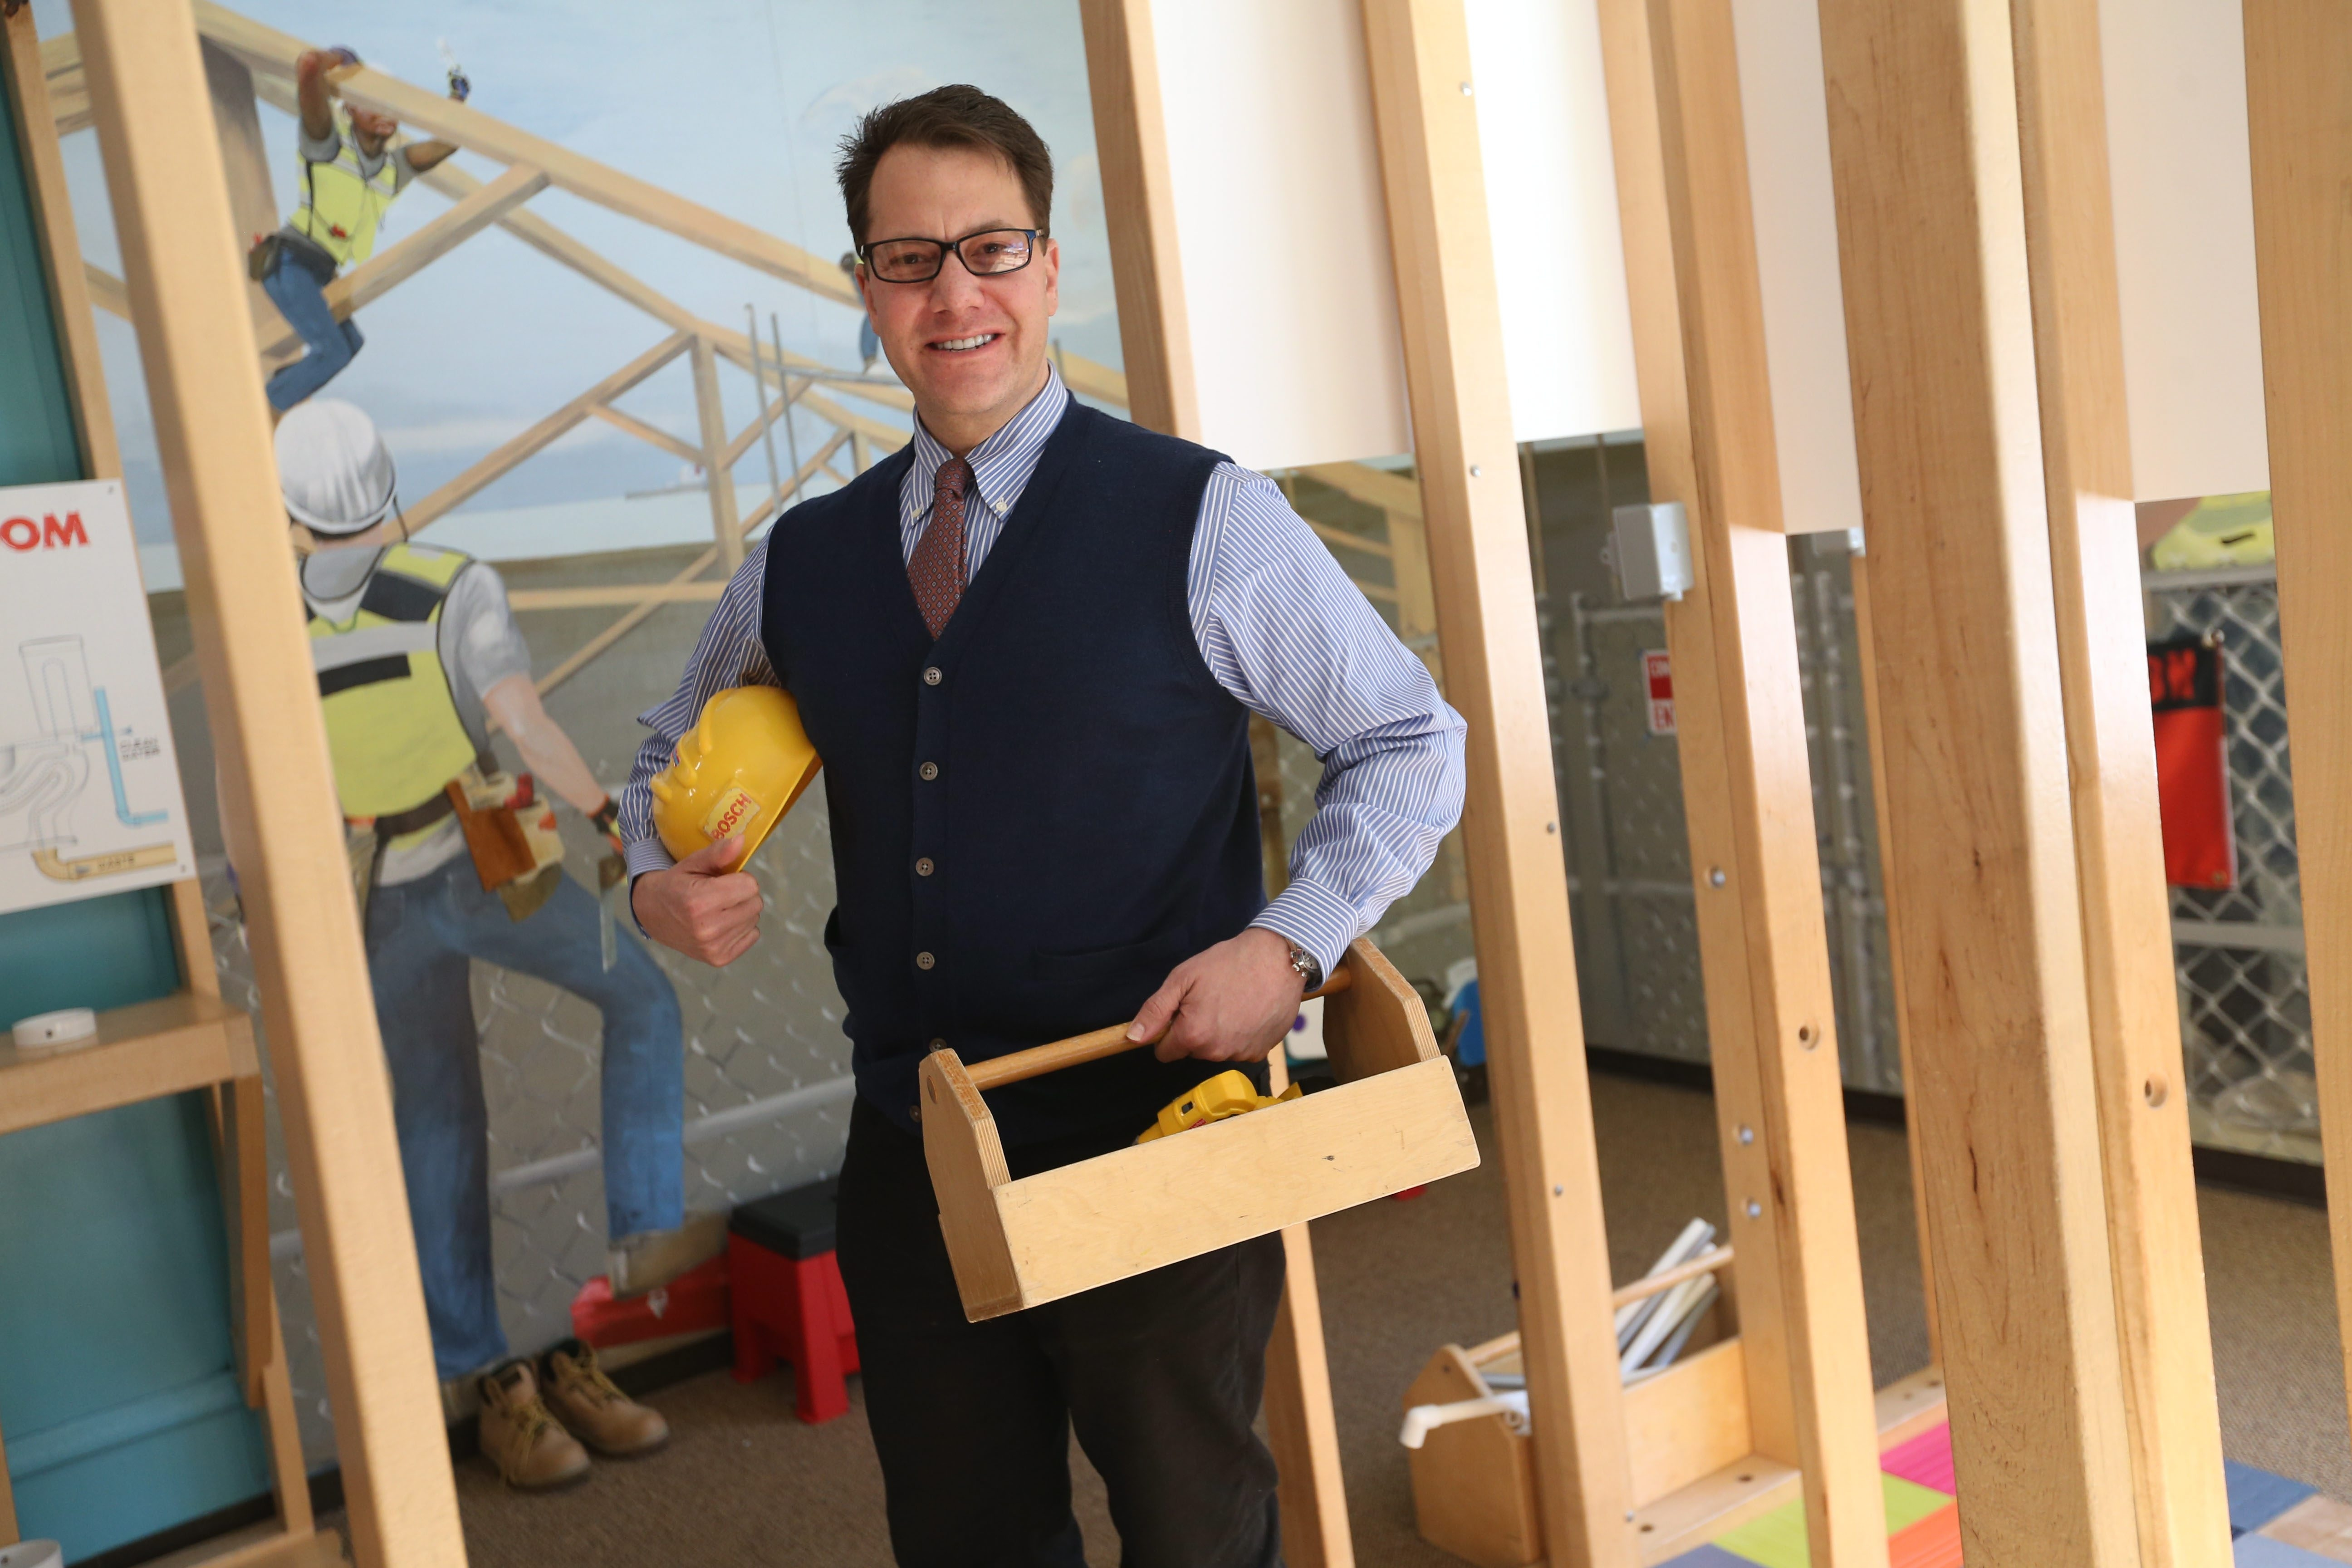 Explore & More Children's Museum's new CEO Douglas Love says a Canalside location will reach 250,000 or more kids.